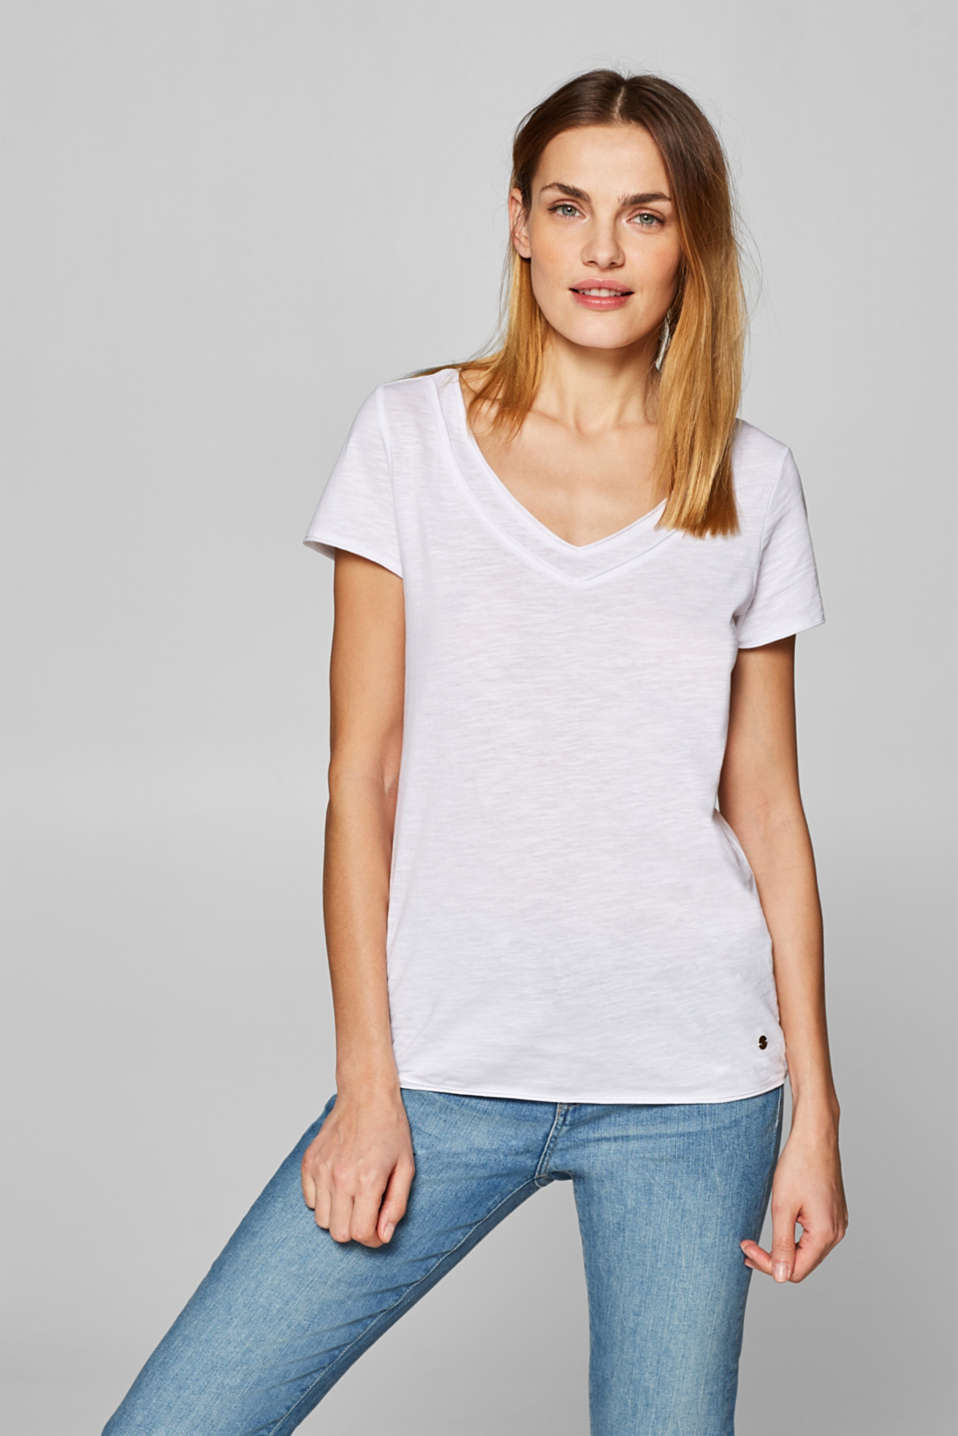 Esprit - V-neck T-shirt with organic cotton, 100% cotton